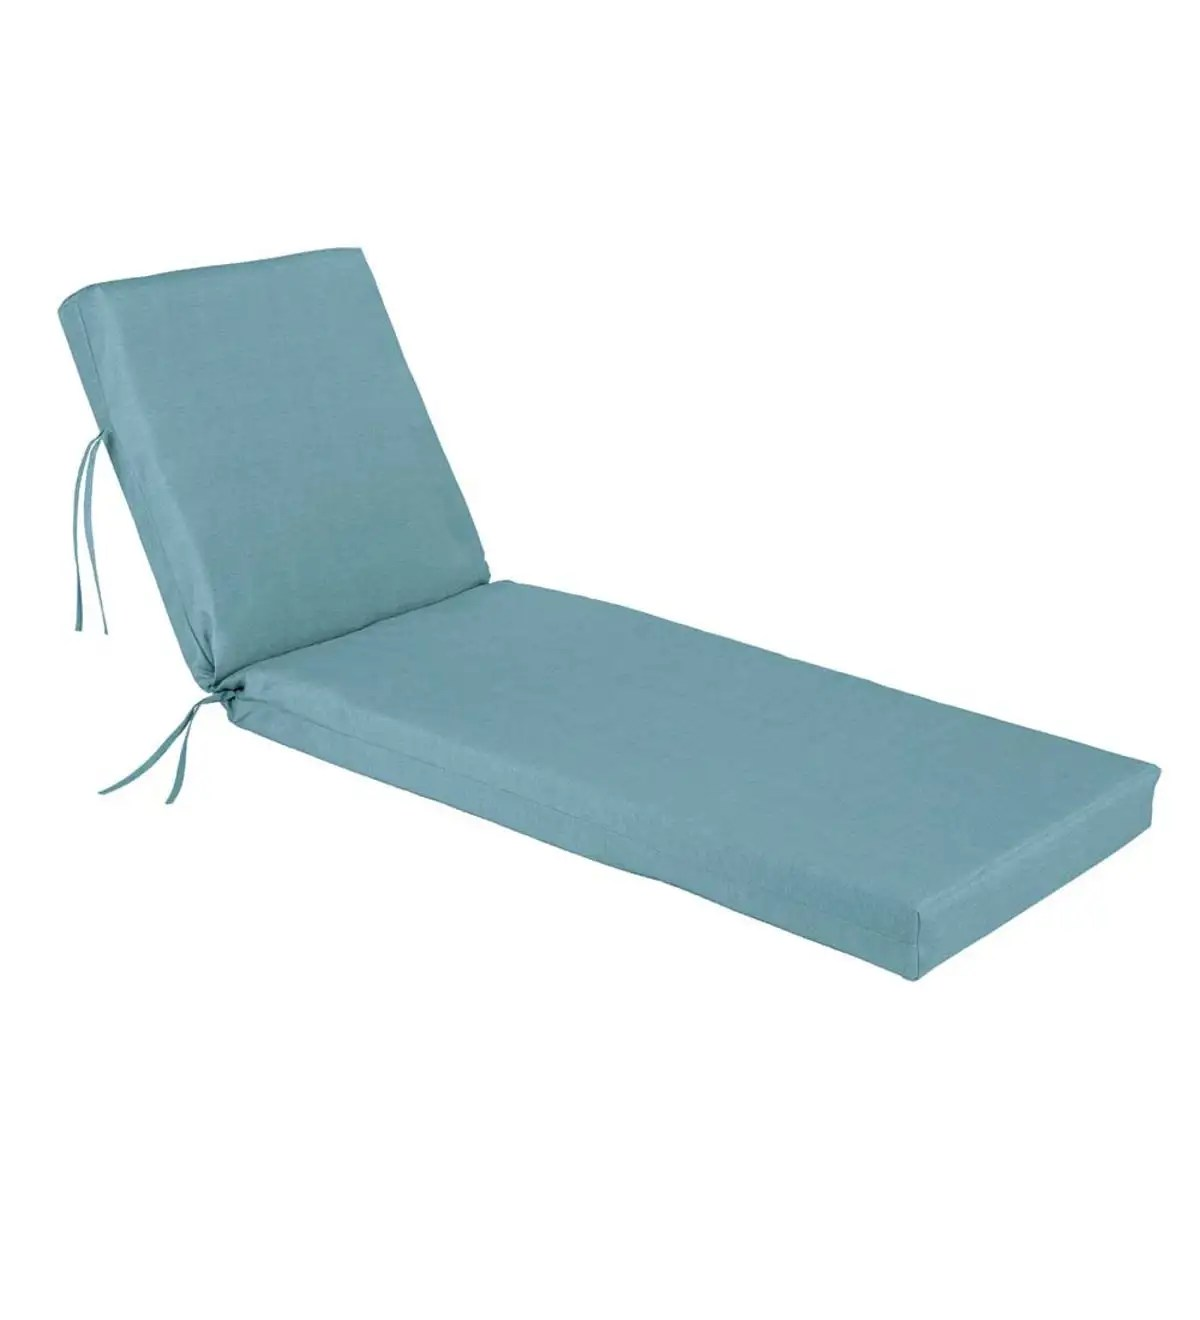 lounge chair cushions cheap waiting room chairs with arms shenandoah outdoor chaise cushion plowhearth